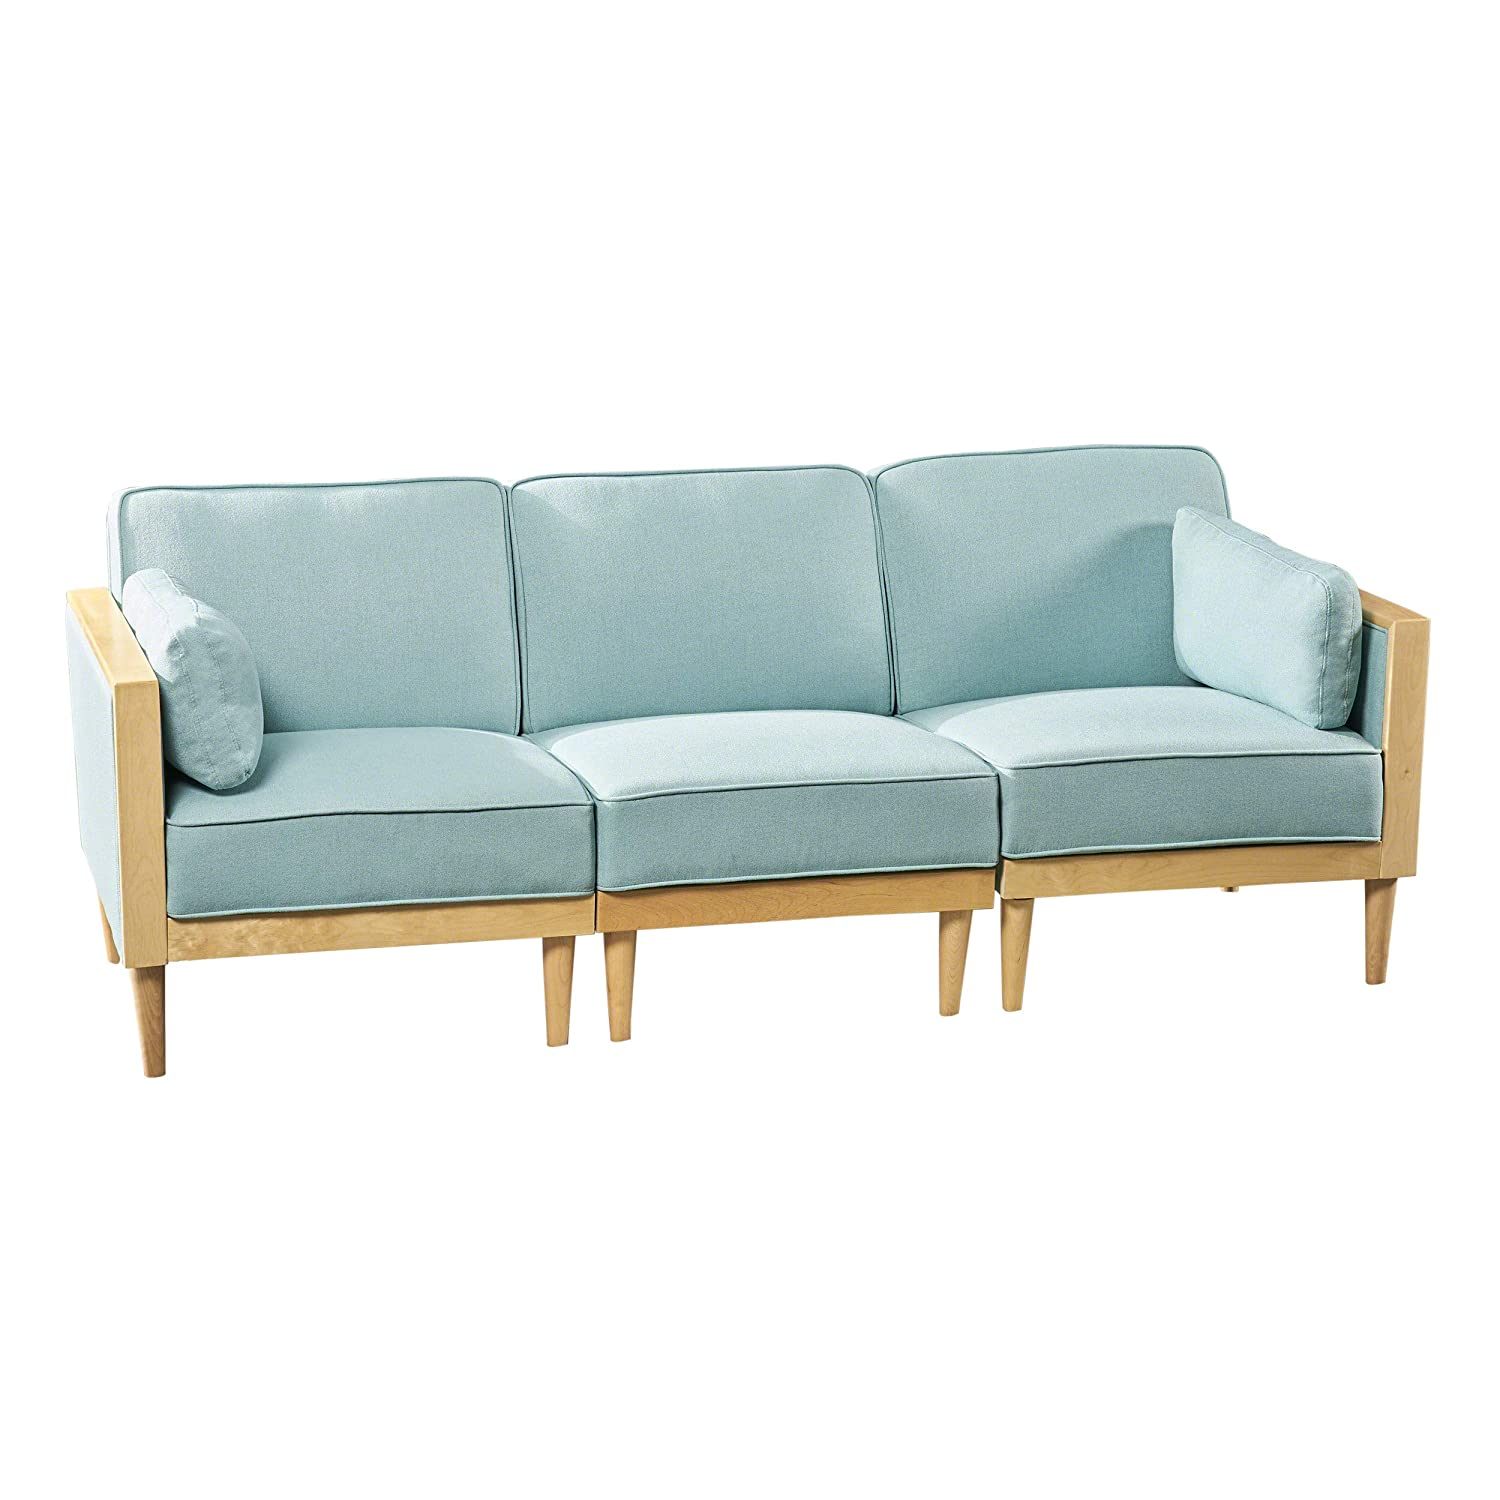 Tegan sectional sofa set 3 piece deep seating piped cushions contemporary mid century modern modular configurable sky blue with natural